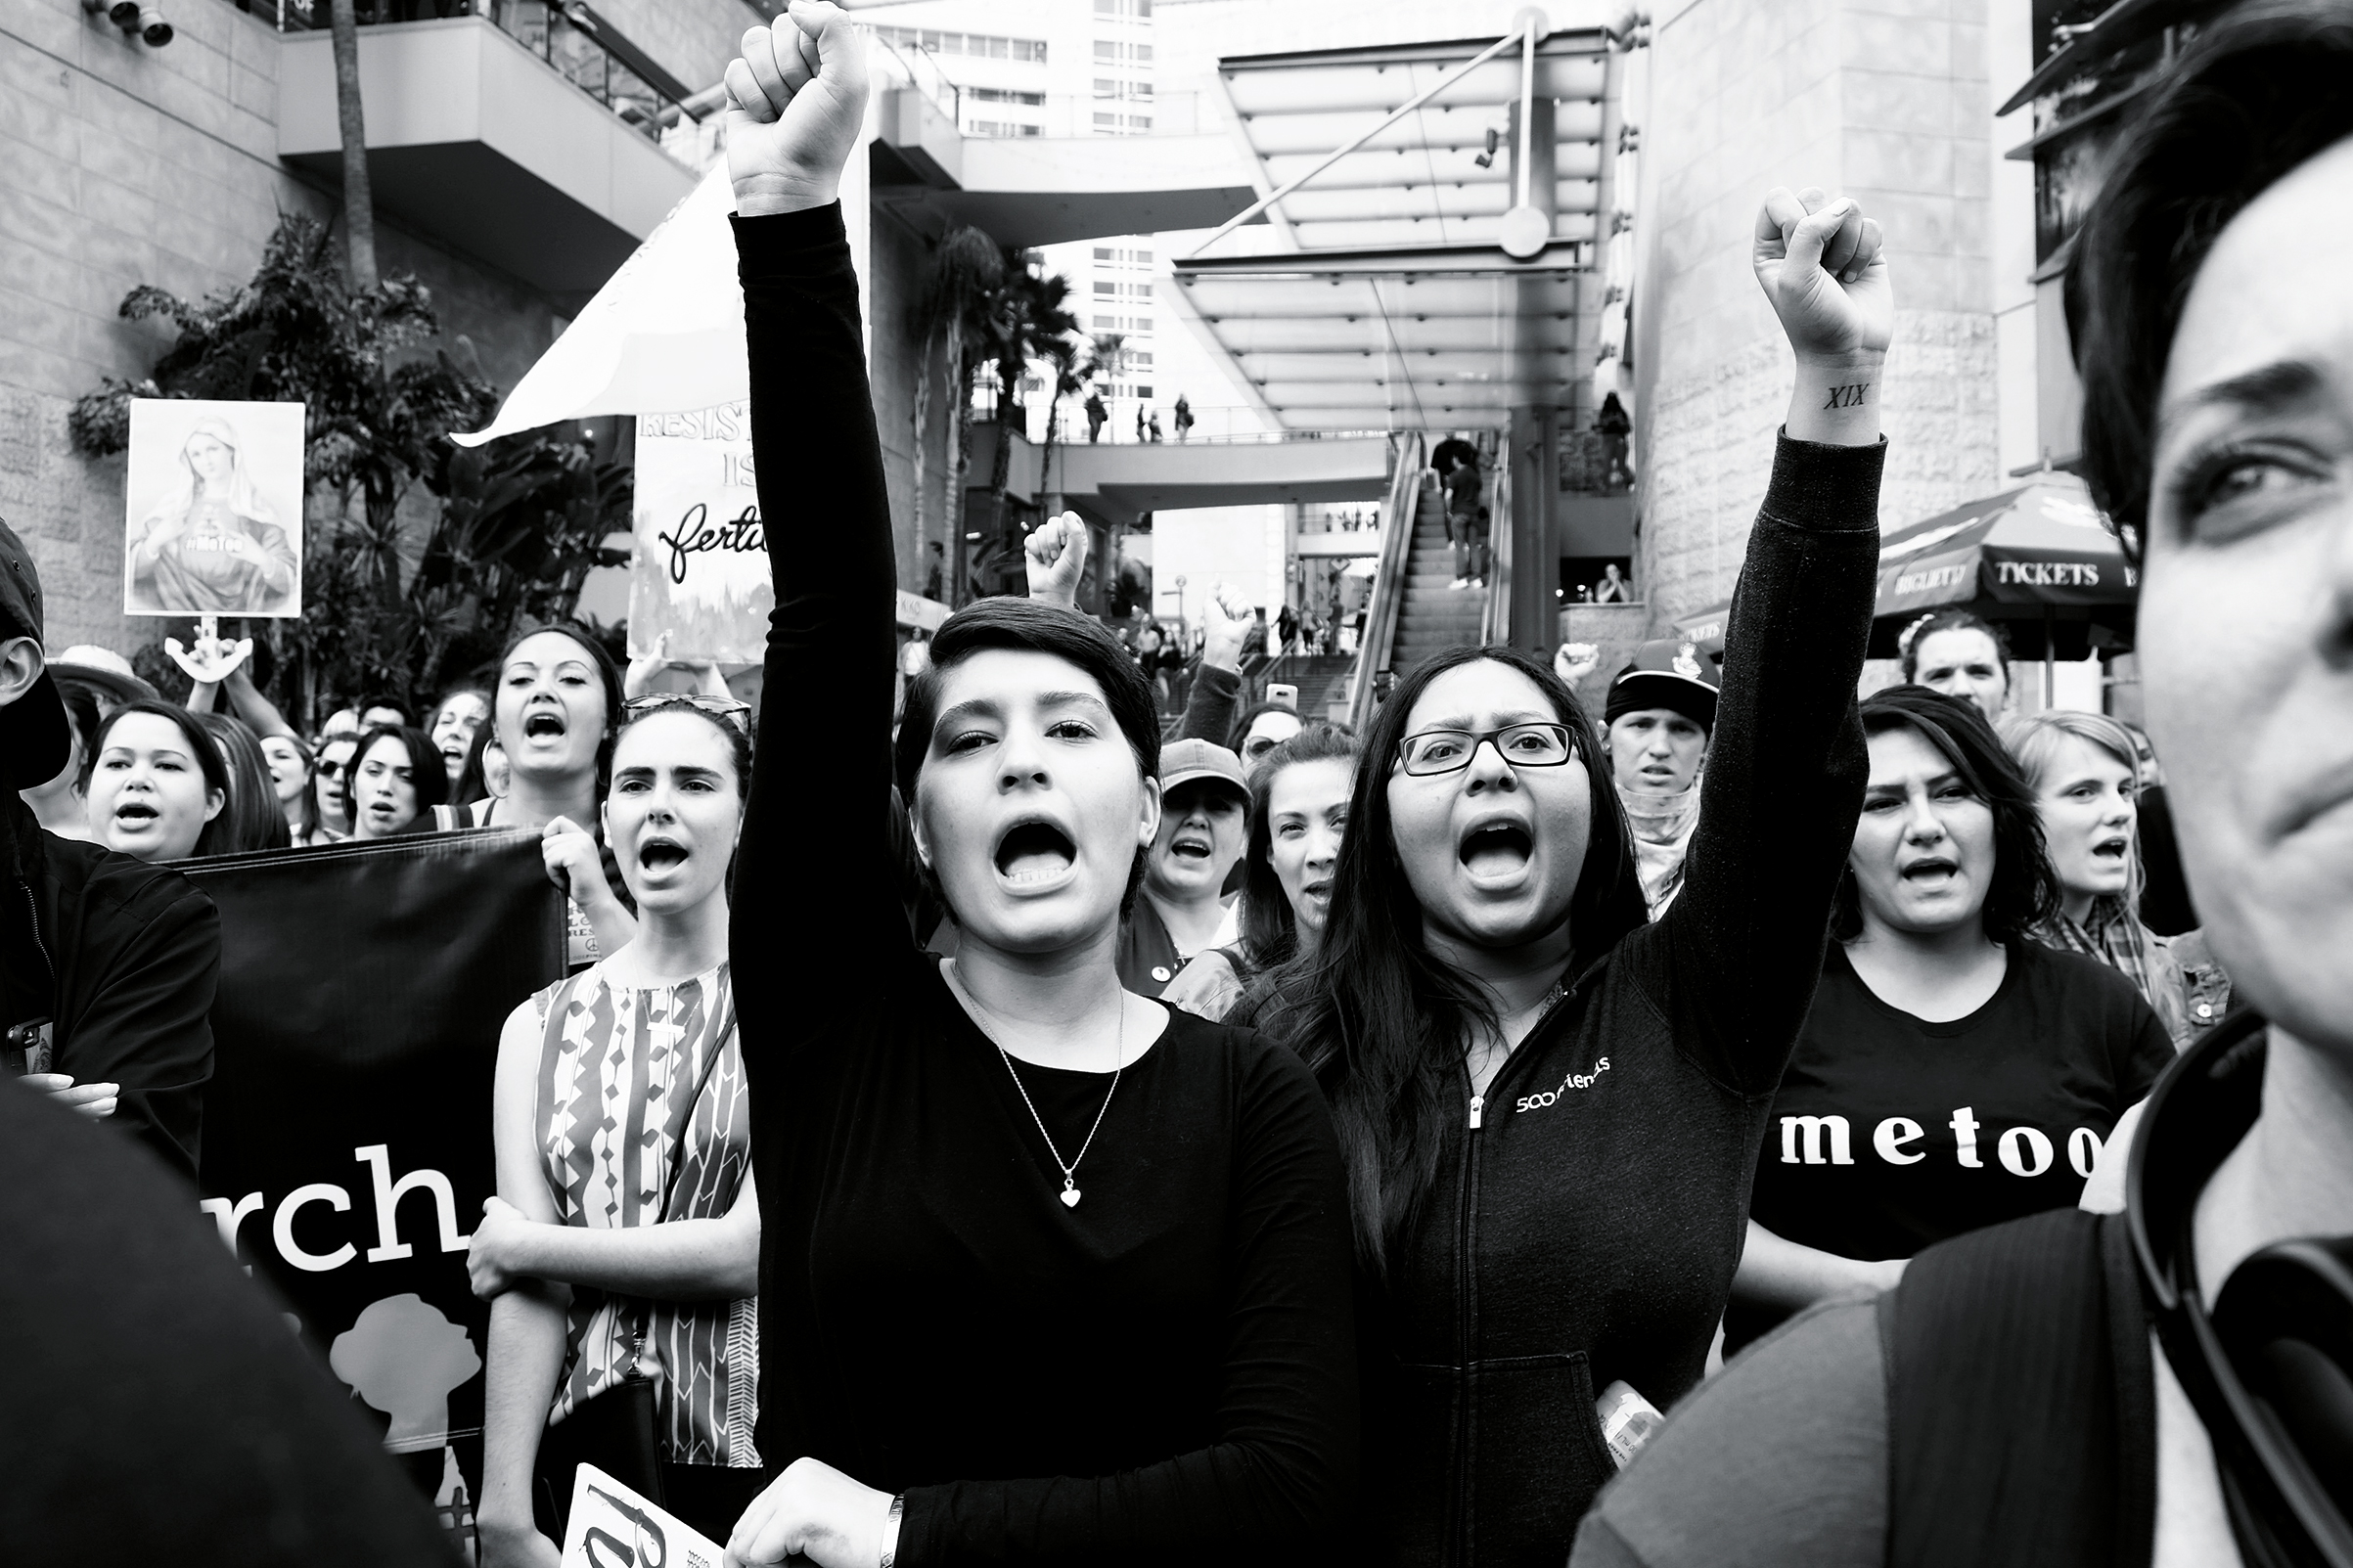 Women join together to pretest sexual harassment and assault at a rally in Hollywood, Nov. 2017.